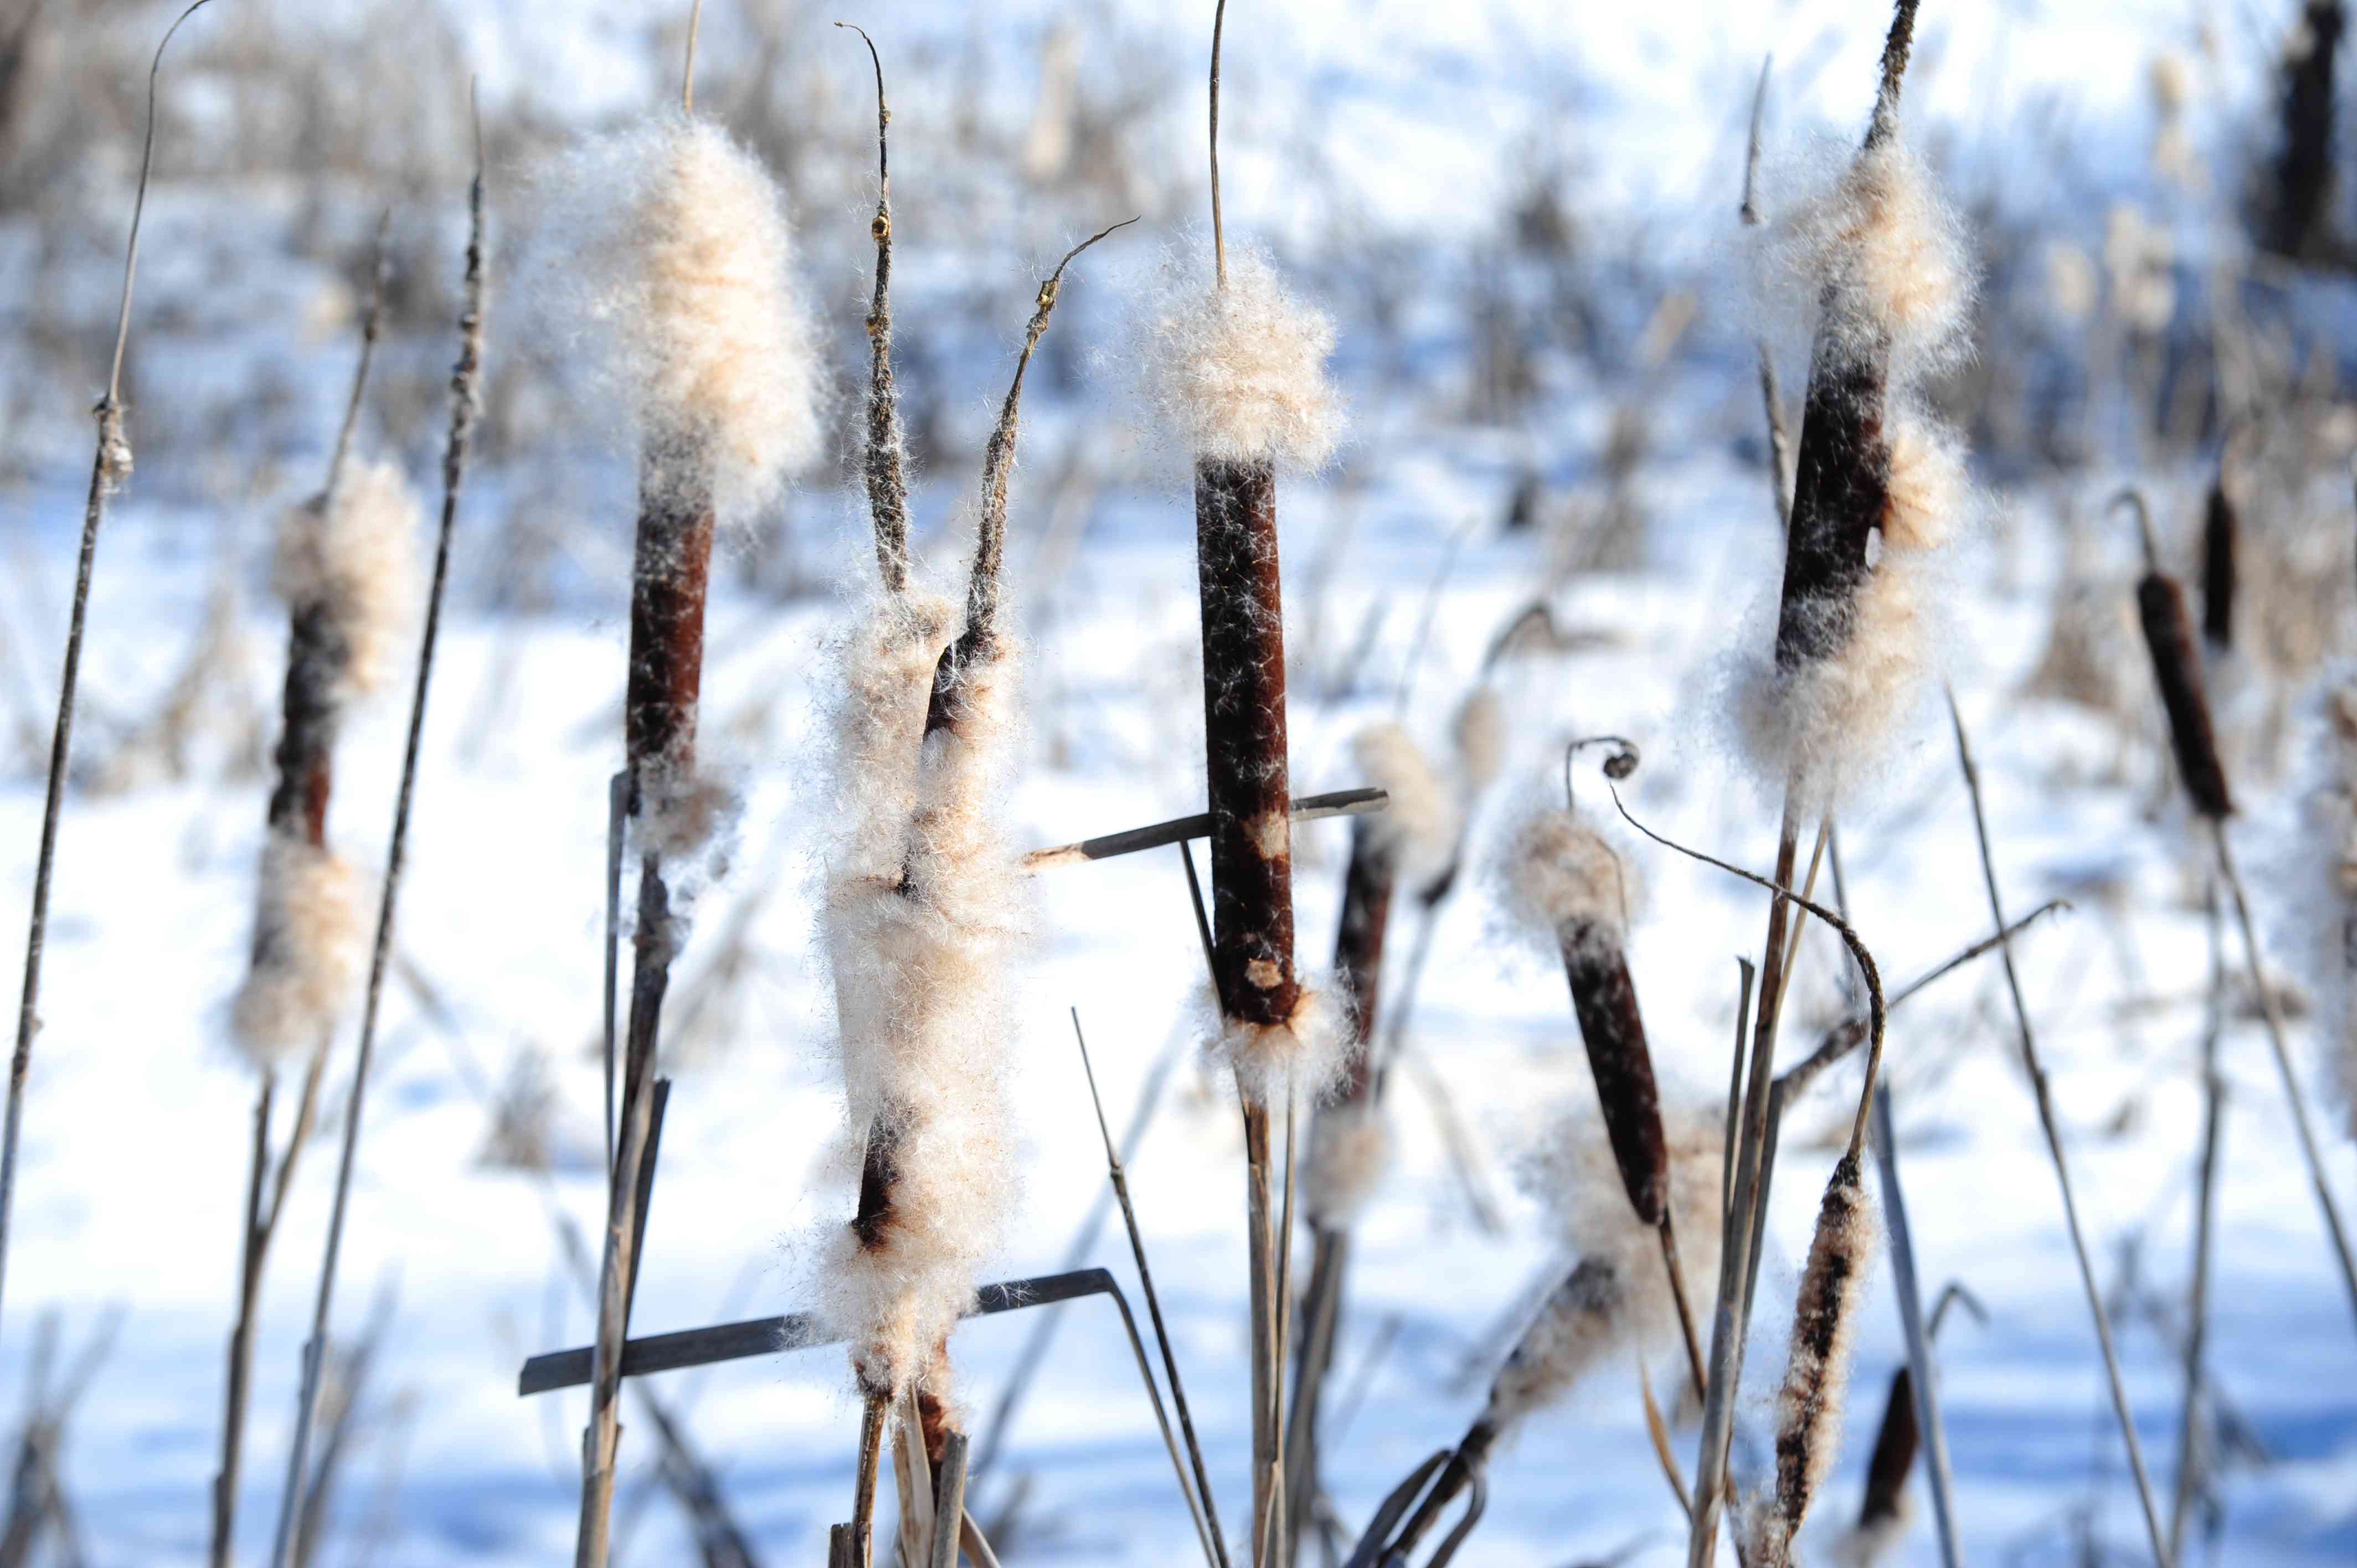 Common cattail plant on thin stems with sausage-shaped spikes covered with fuzzy cream-colored blooms in the snow